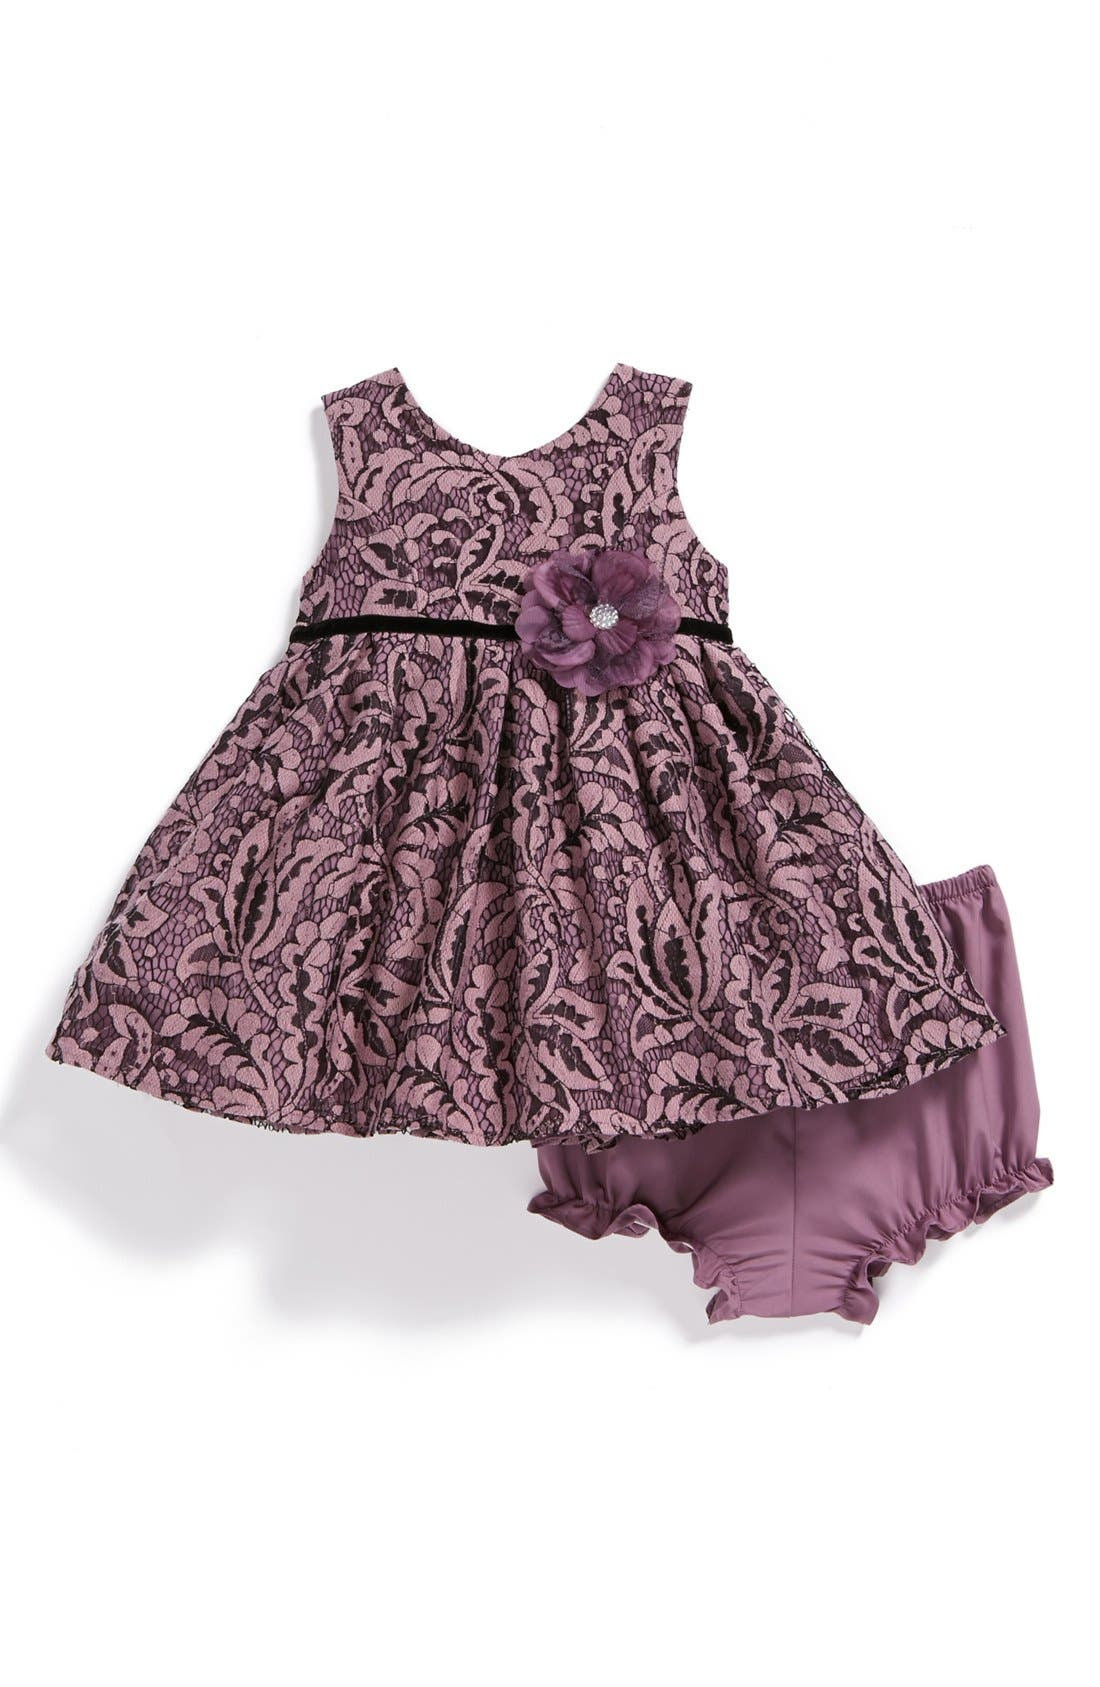 Alternate Image 1 Selected - Pippa & Julie Lace Dress (Baby Girls)